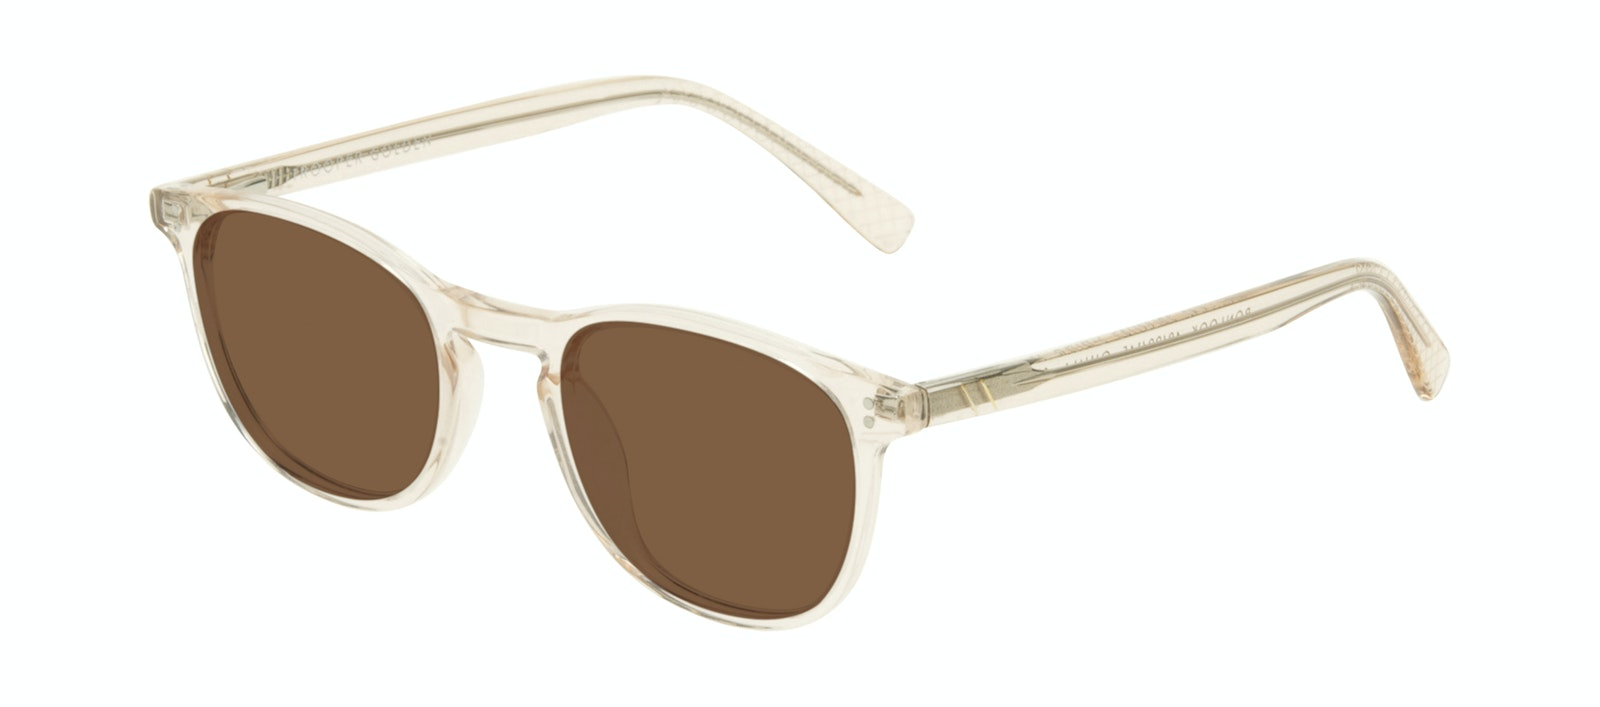 Affordable Fashion Glasses Round Sunglasses Men Trooper Golden Tilt